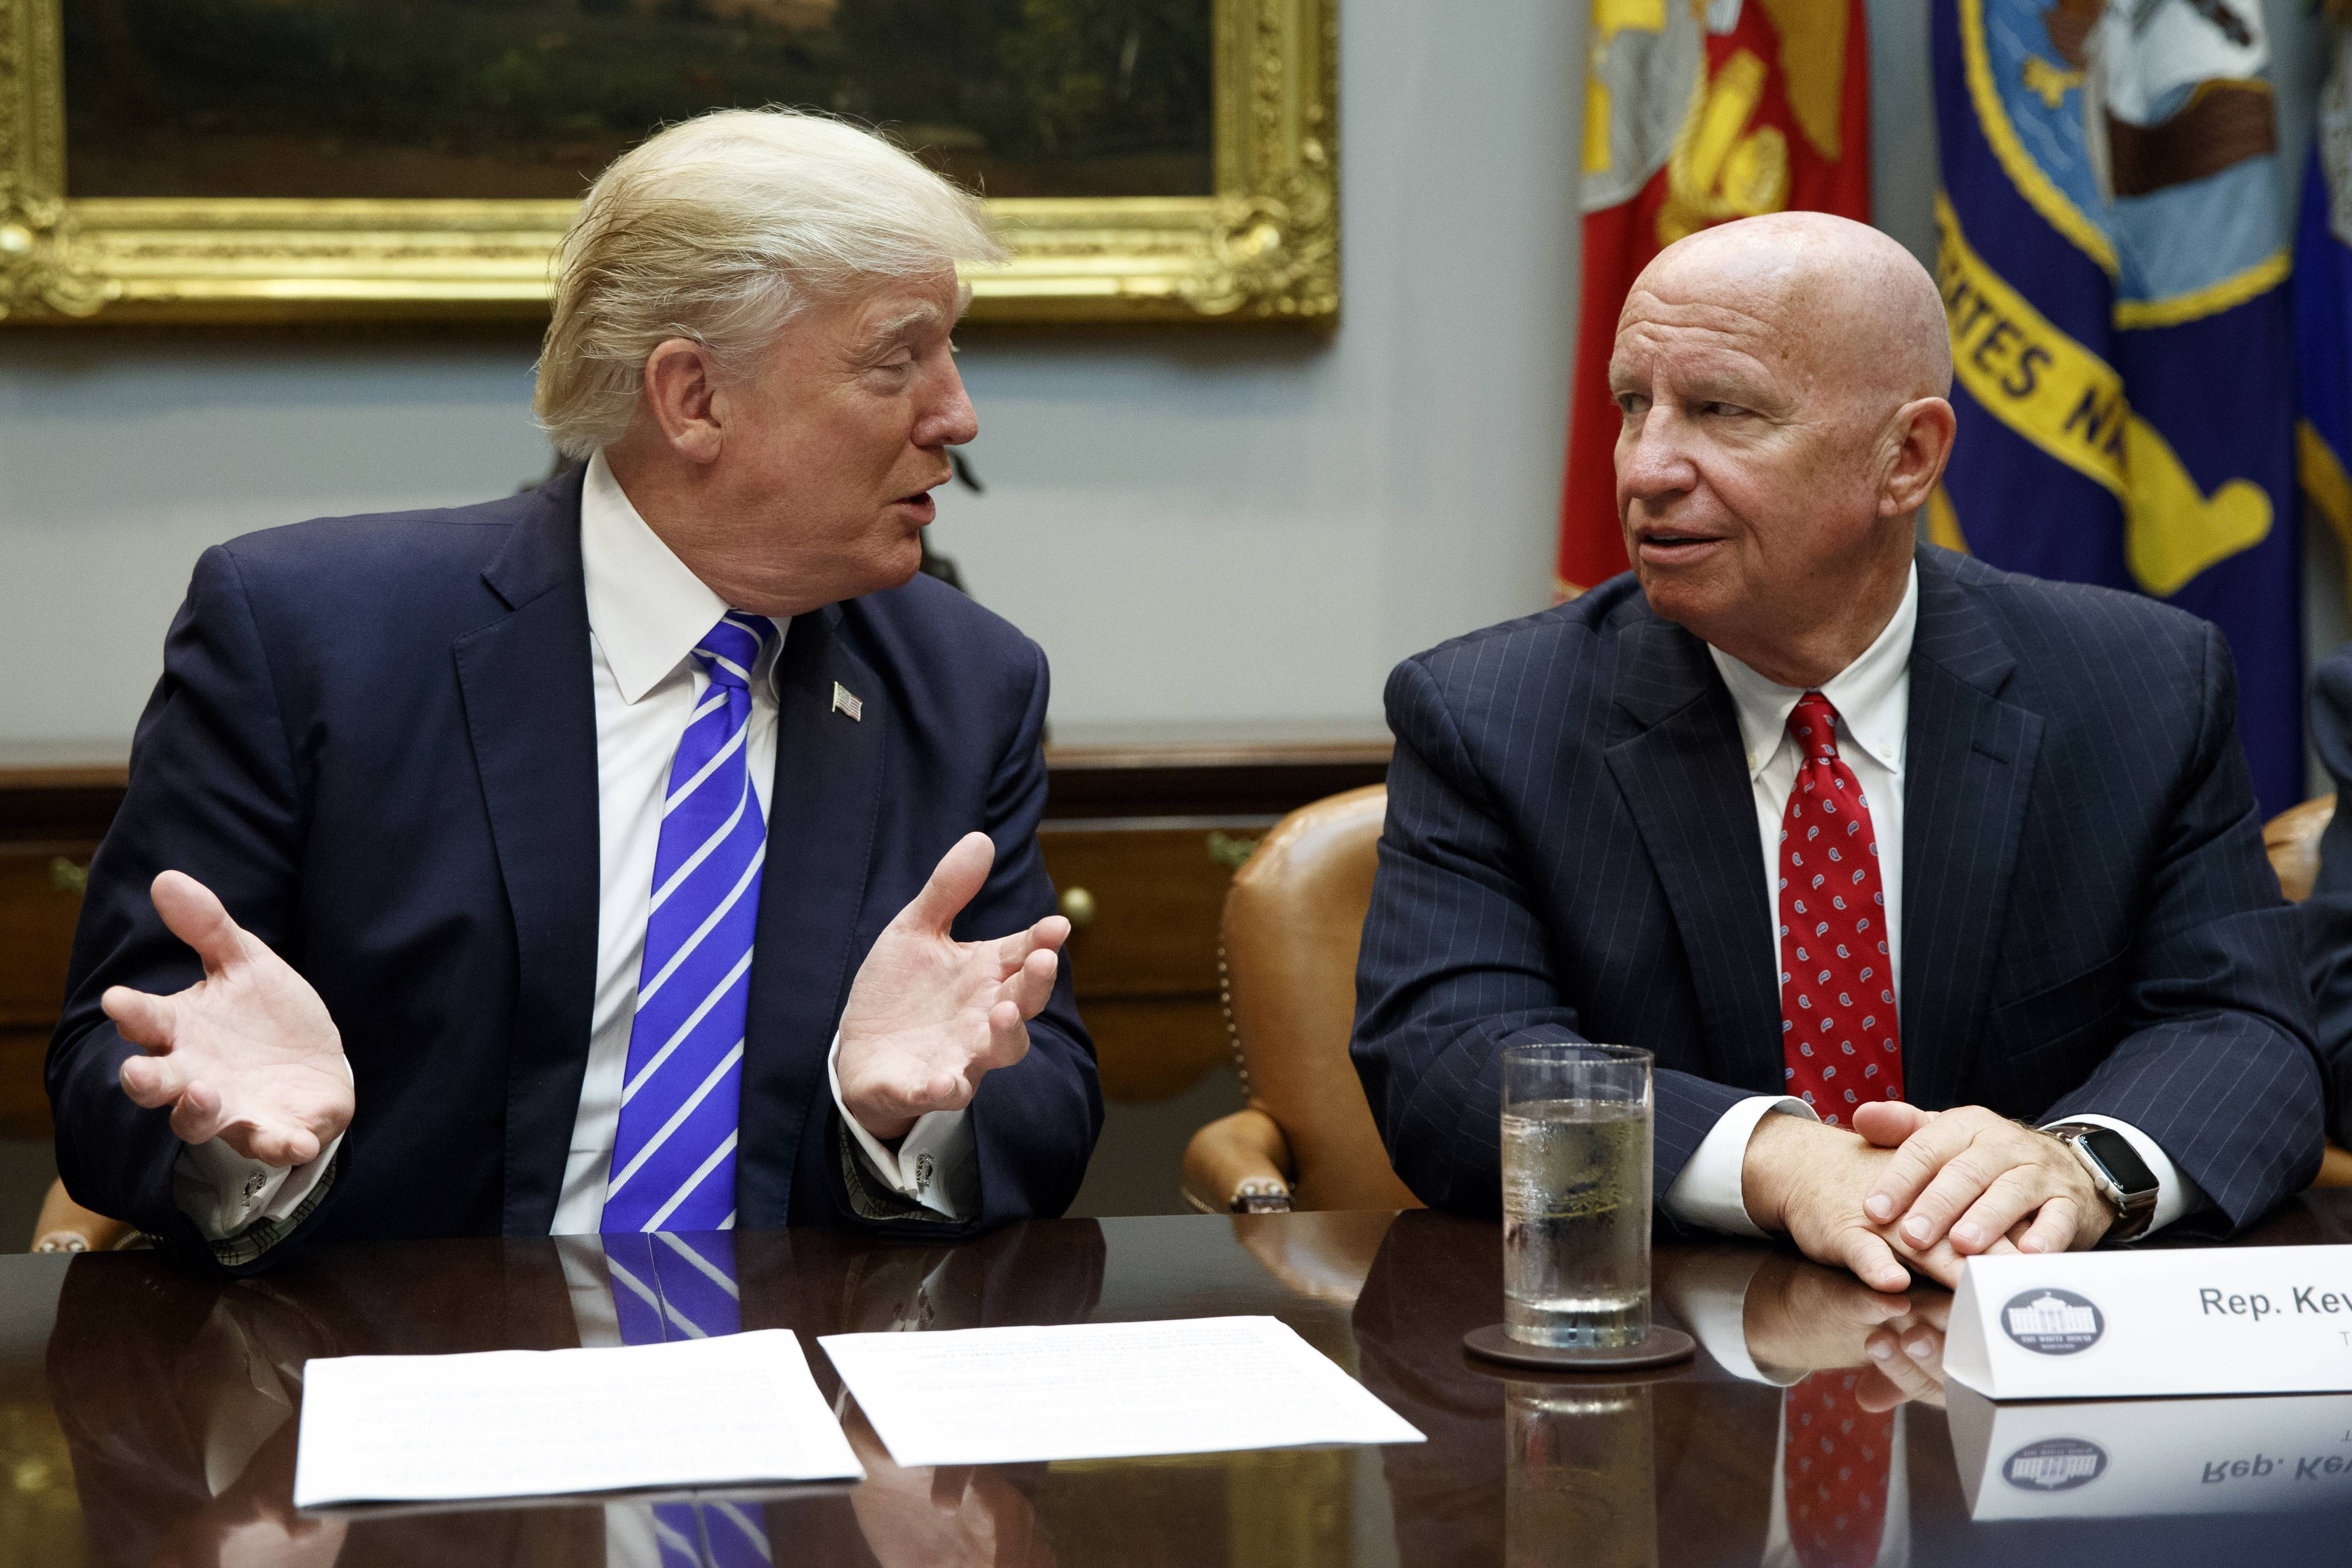 "Congressman Kevin Brady, R-Texas, chairman of the tax-writing Ways and Means Committee, is one of the main proponents of changing the 401(k) rules, a major disagreement with President Donald Trump, who tweeted Monday that 401(k)s are a ""great and popular middle class tax break"" that he does not want to change."